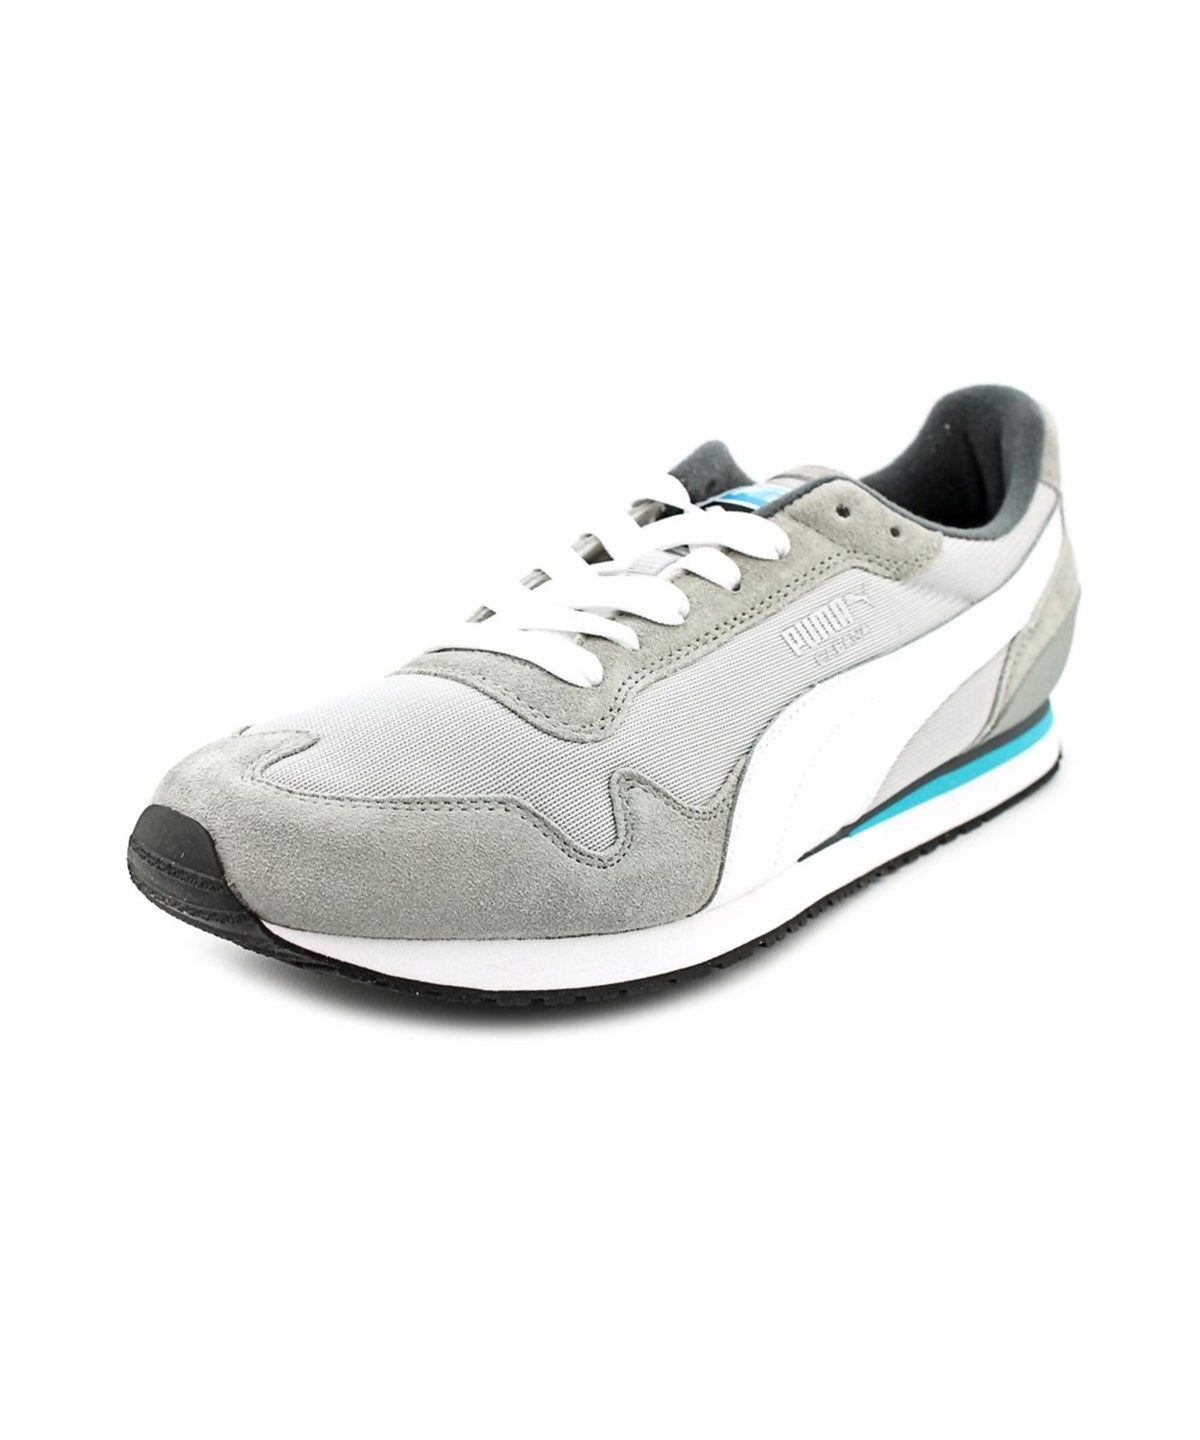 UK Shoes Store  Puma Cabana Mesh Sport Men Synthetic Sneakers Blue